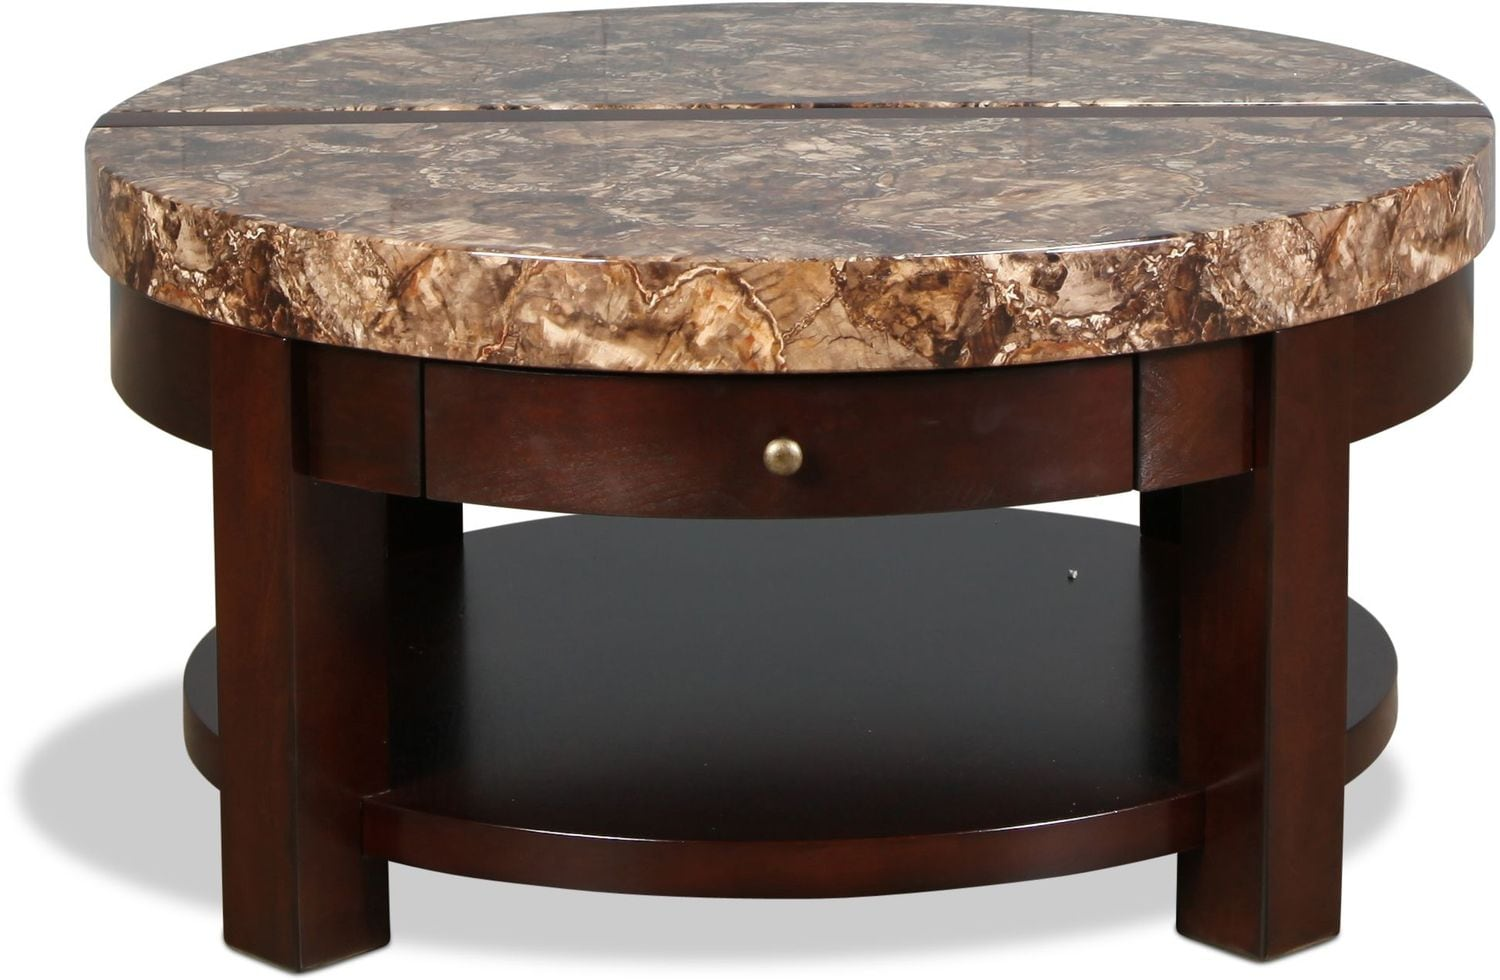 Cabo Lift-Top Coffee Table - Brown Cherry with Faux Marble